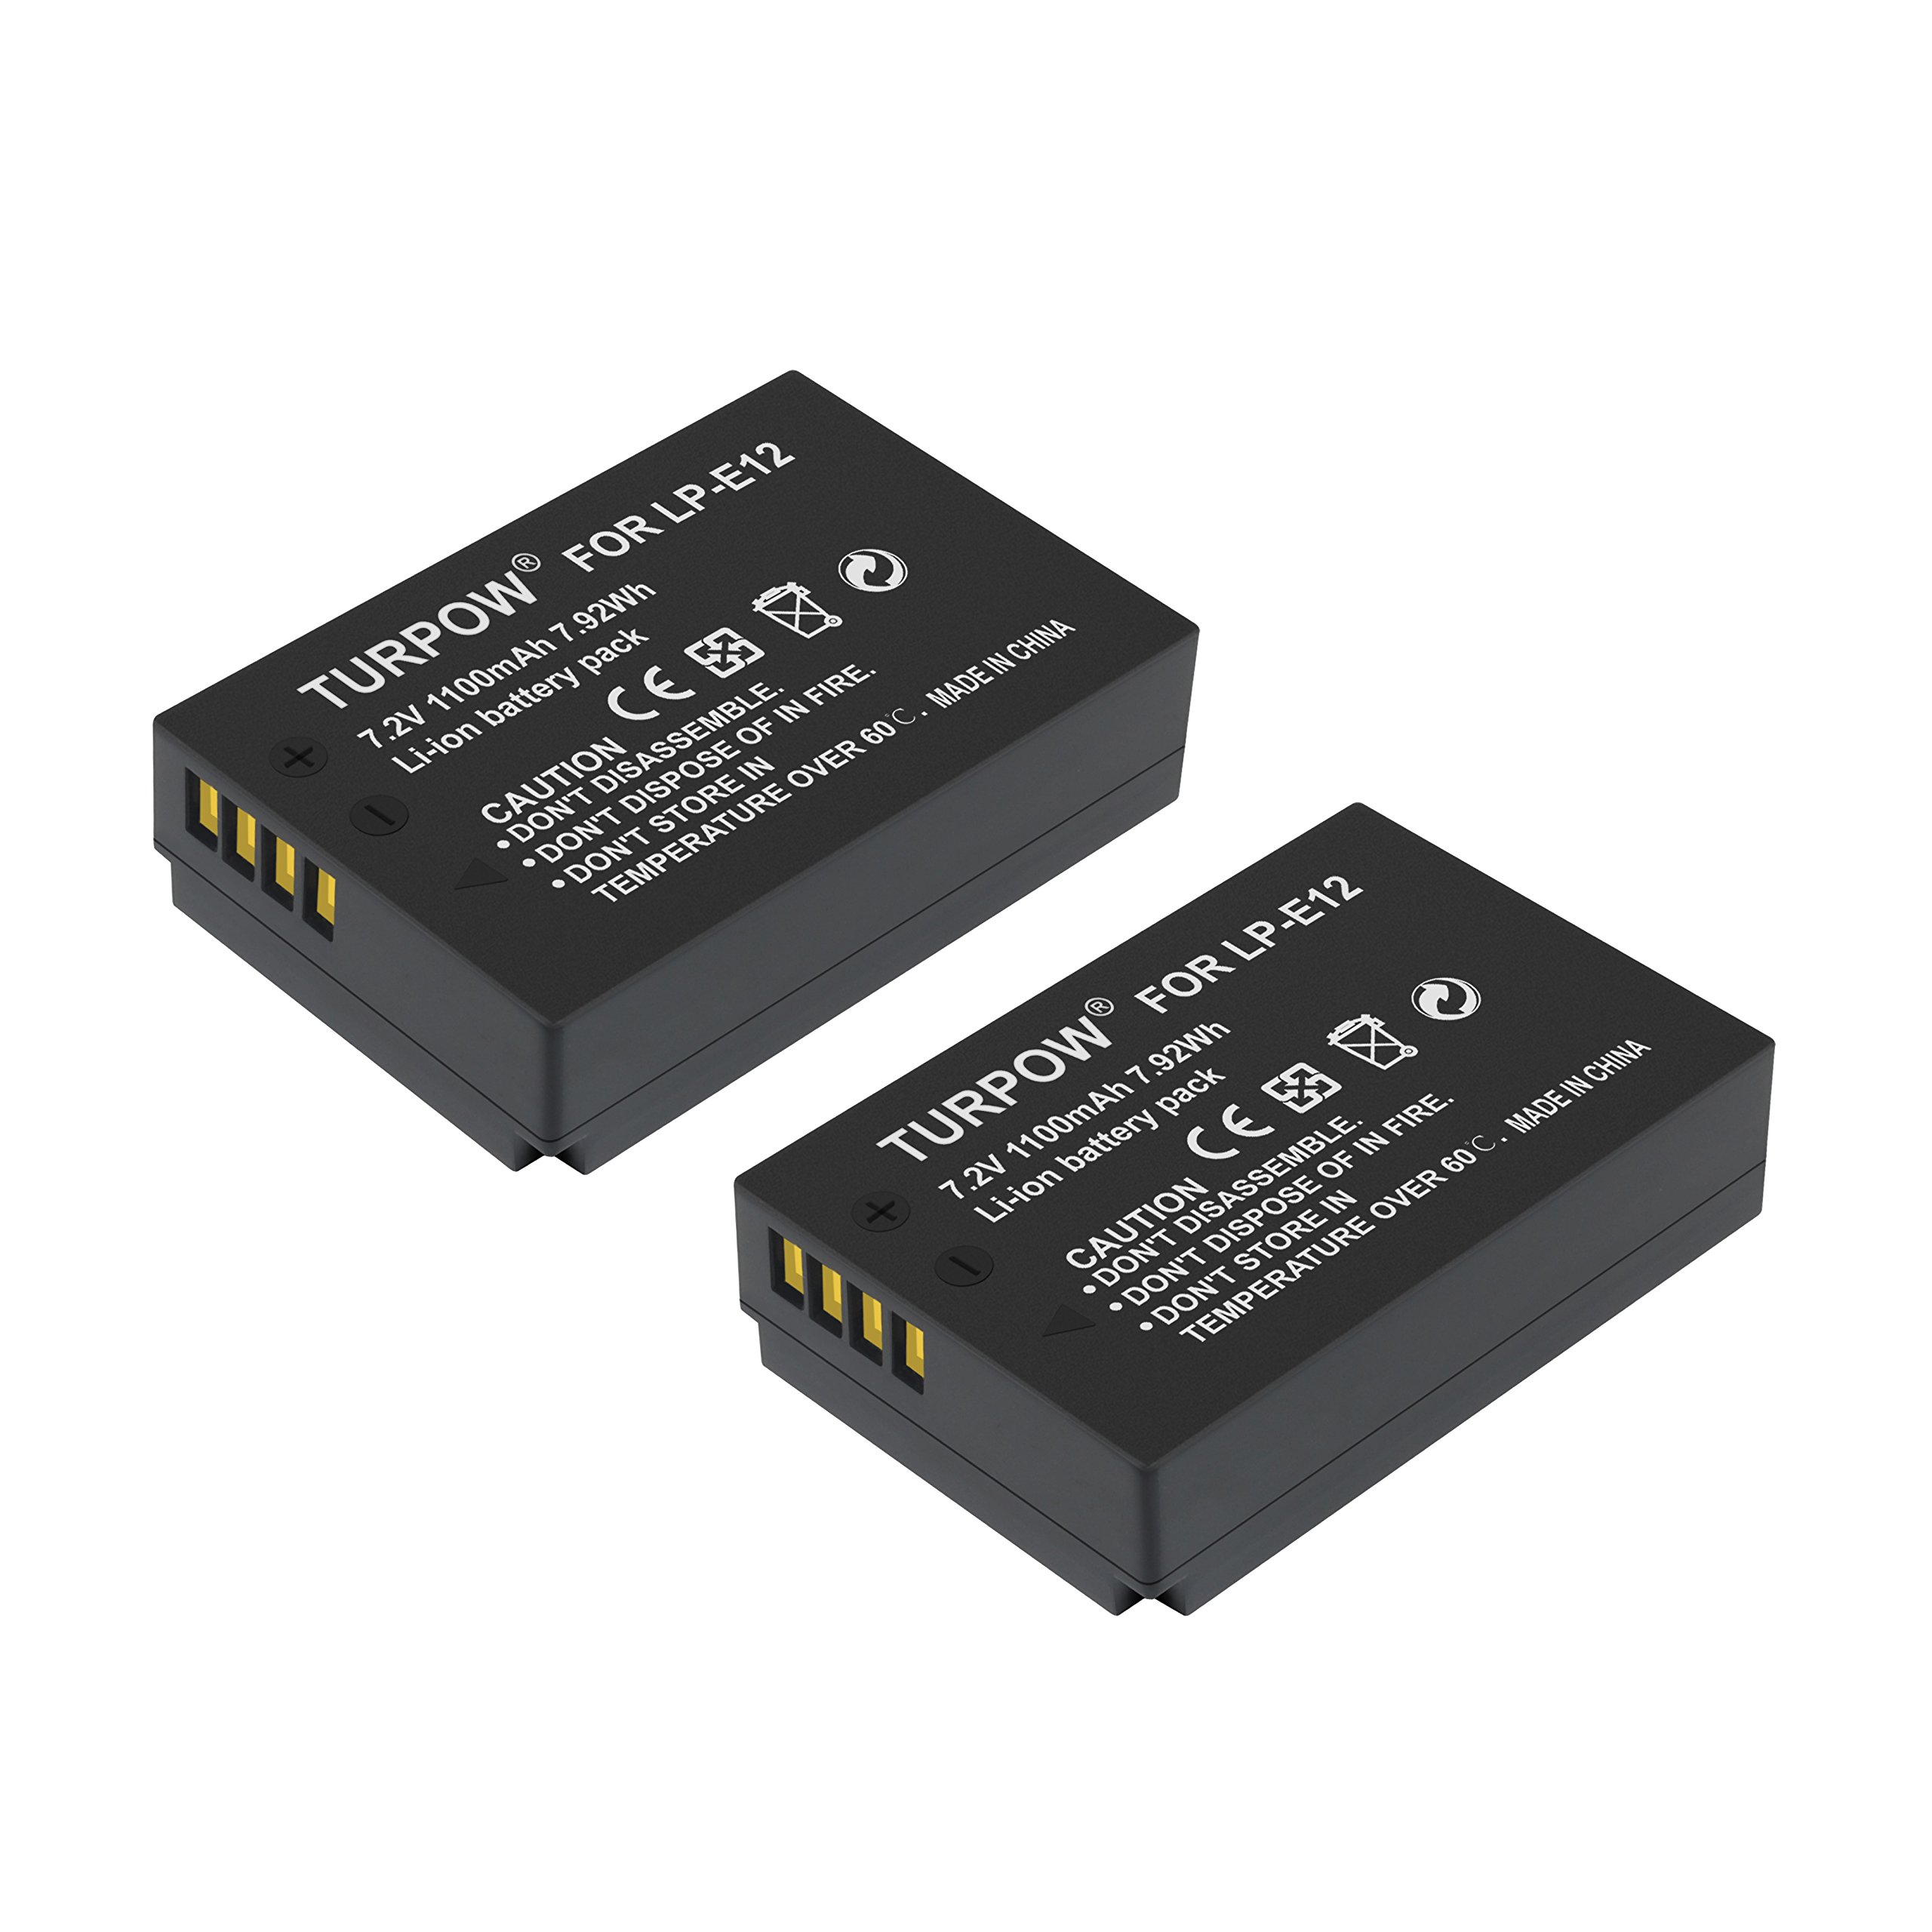 LP-E12 Battery-Turpow 2 Pack LP-E12 Camera Batteries Replacement Lithium-ion Battery for Canon Rebel SL1 EOS-M EOS M2 EOS M10 EOS M50 EOS M100 EOS 100D Mirrorless Digital Camera